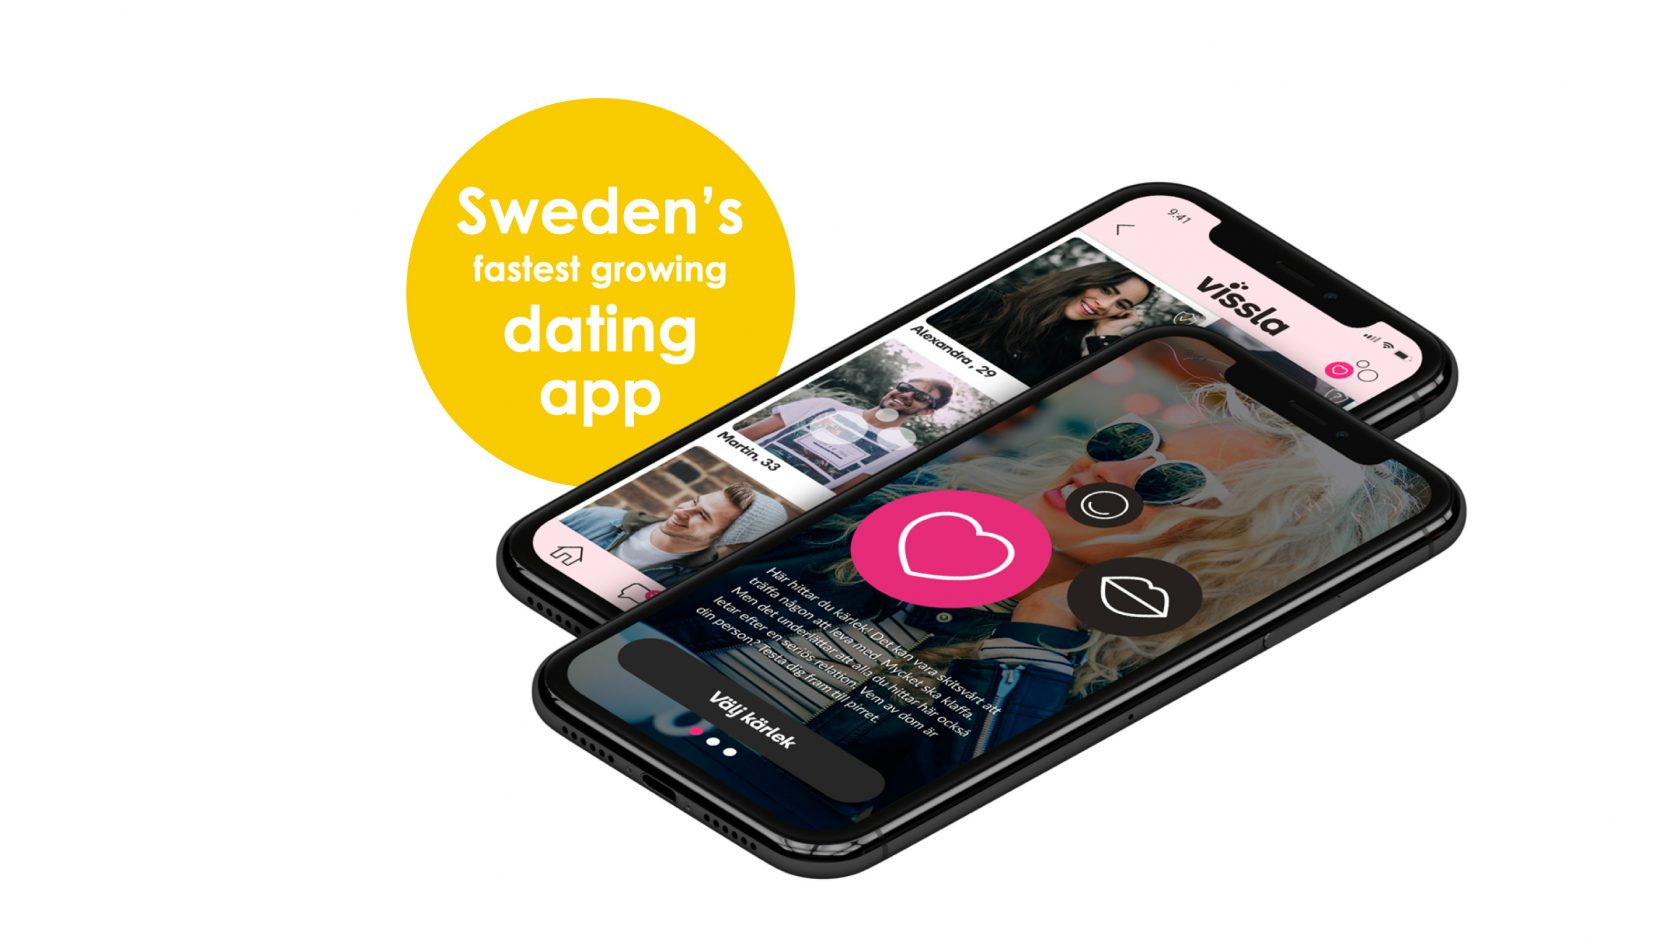 seriös relation dating apps